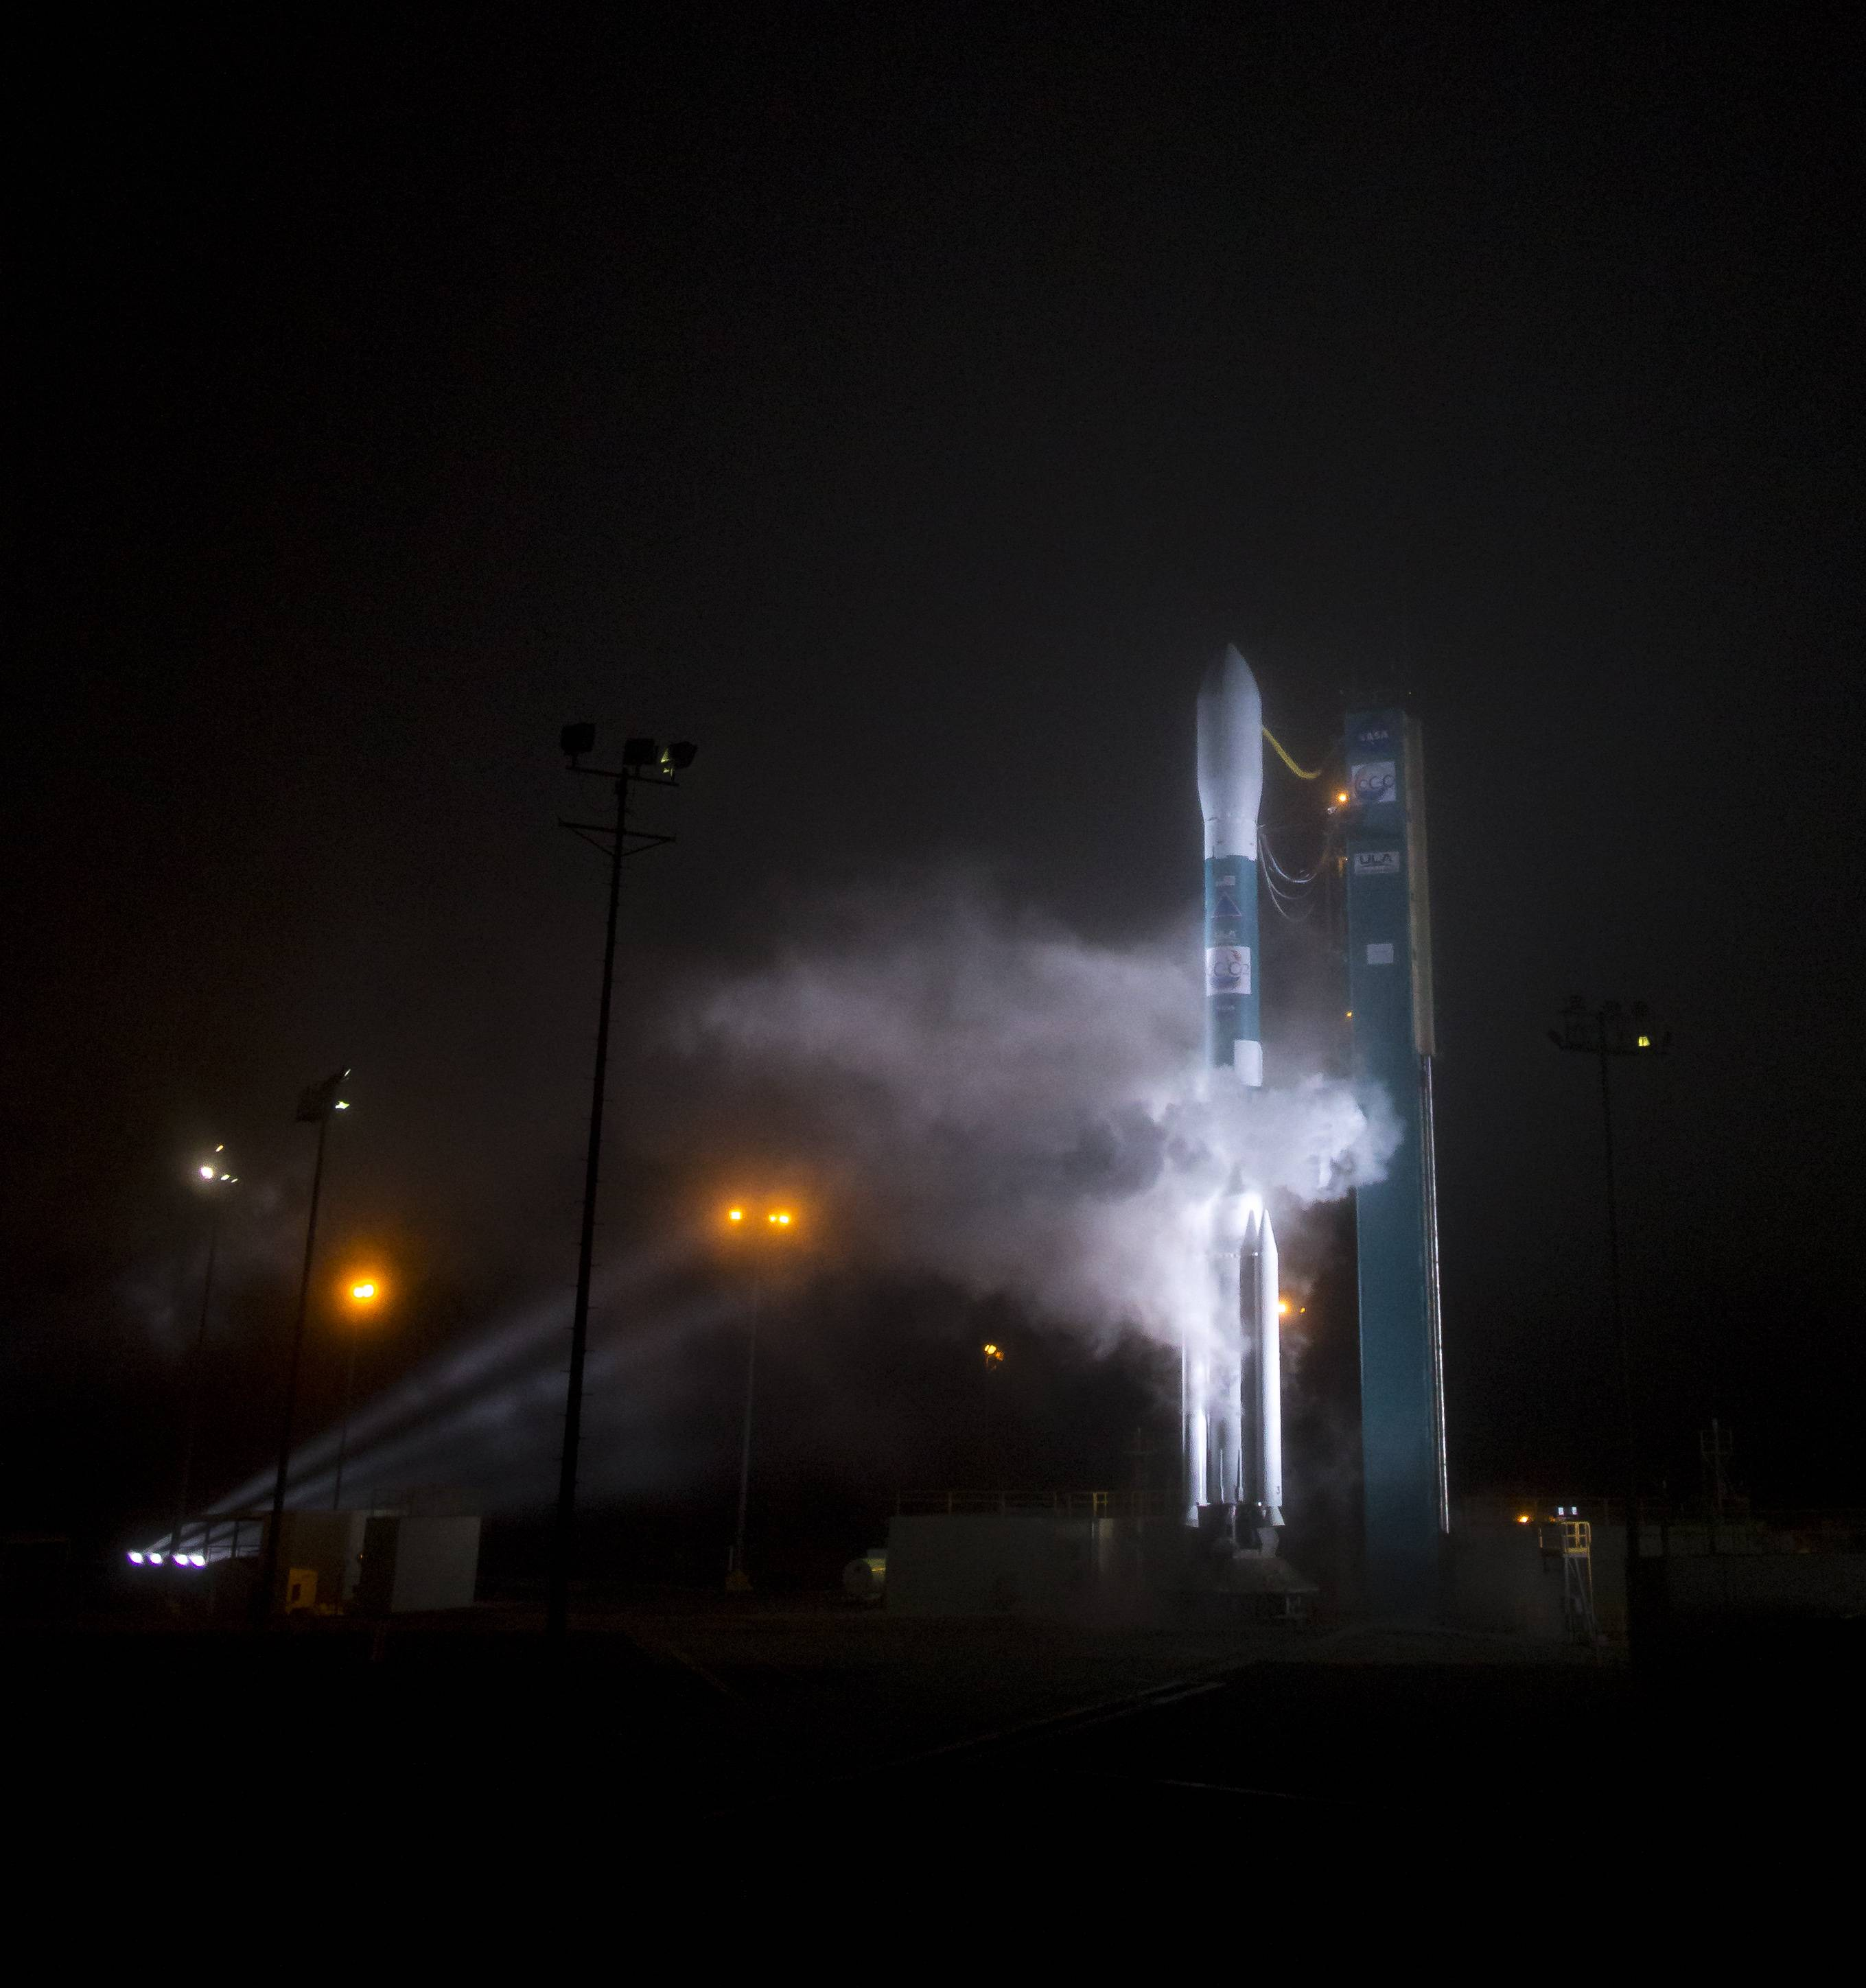 A Delta 2 rocket with the Orbiting Carbon Observatory-2 satellite sits on the launchpad about 8 minutes before launch at Vandenberg Air Force Base, Calif., Wednesday morning, July 2, 2014. The goal of the $468 million mission, designed to last at least two years, is to study the processes behind how the environment absorbs carbon dioxide.